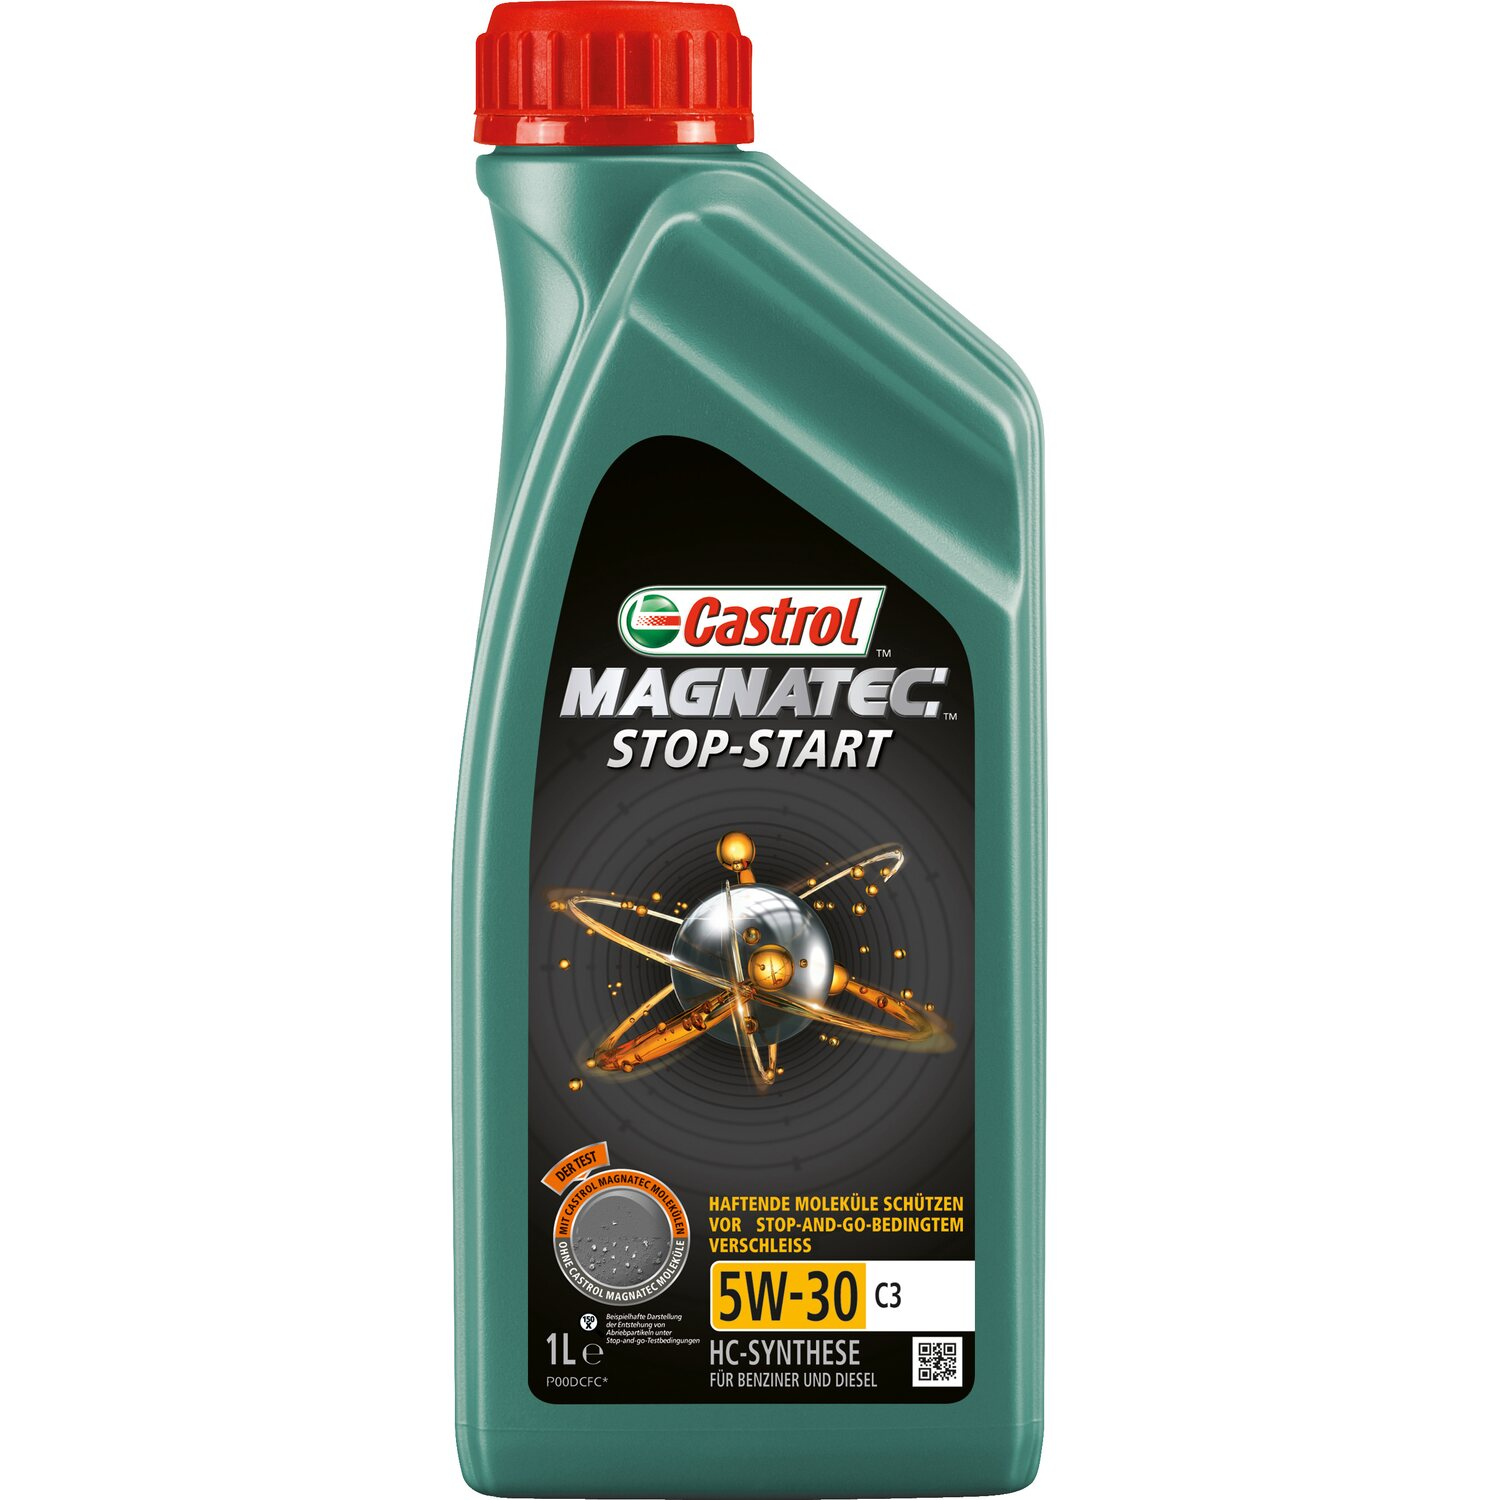 castrol magnatec stop start 5w 30 c3 motor l 1 l kaufen. Black Bedroom Furniture Sets. Home Design Ideas